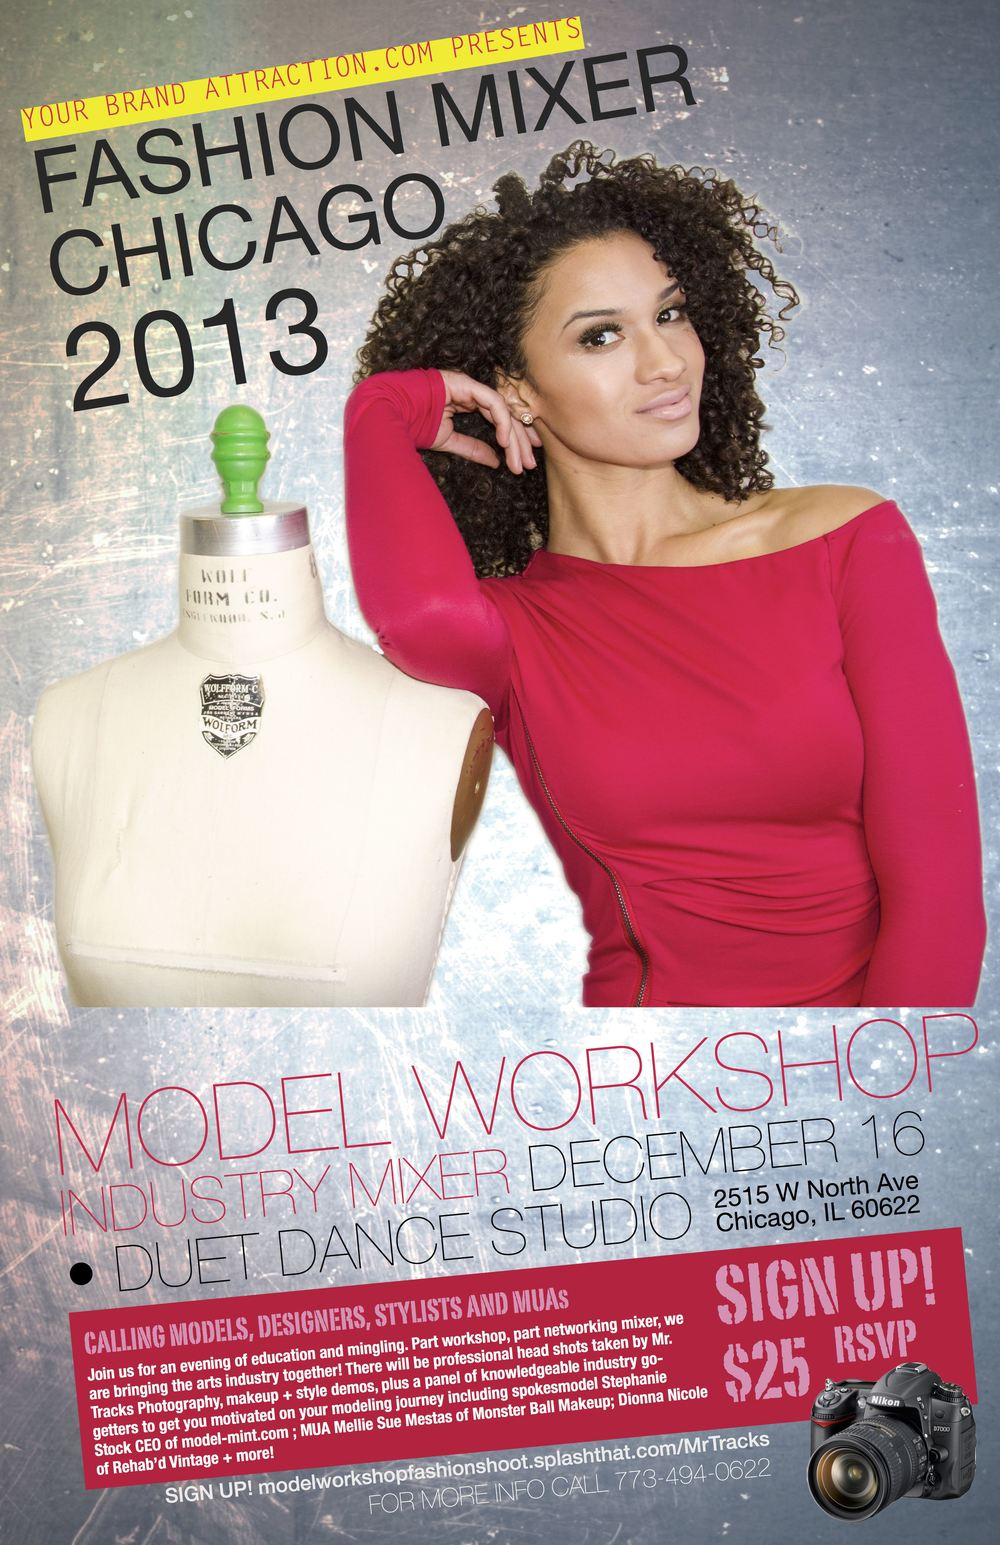 Join us for an evening of education and mingling. Part workshop, part networking mixer, we are bringing the arts industry together! There will be professional head shots taken by Mr. Tracks Photography, makeup + style demos, plus a panel of knowledgeable industry go- getters to get you motivated on your modeling journey including spokesmodel Stephanie Stock CEO of model-mint.com ; MUA Mellie Sue Mestas of Monster Ball Makeup; Dionna Nicole of Rehab'd Vintage + more!